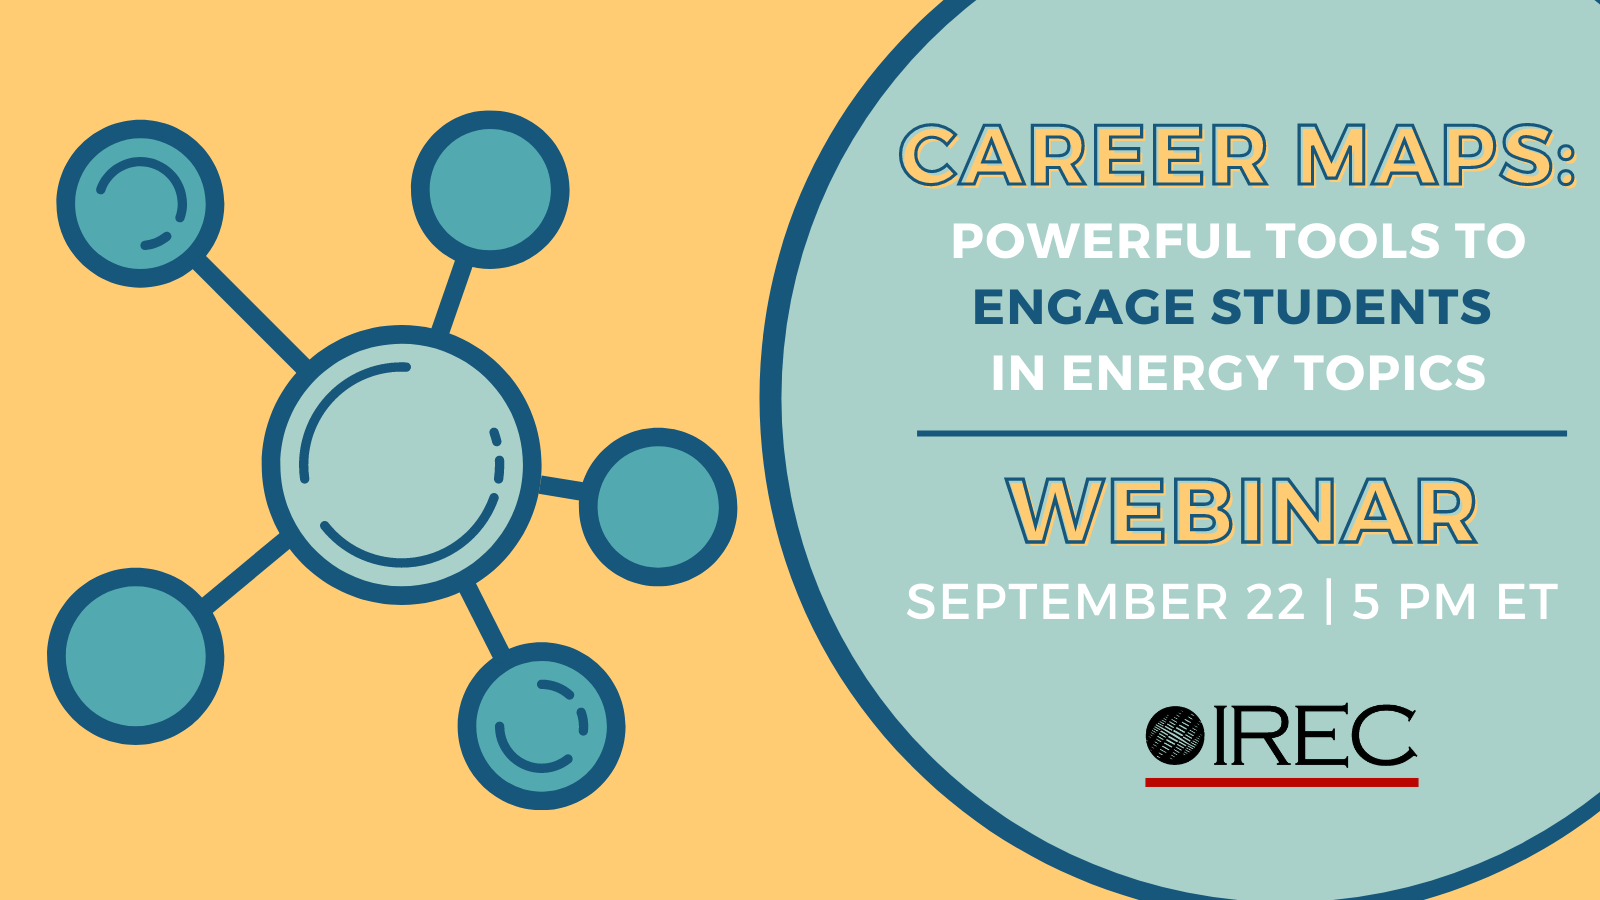 IREC WEBINAR: Career Maps, Powerful Tools to Engage Students in Energy Topics, September 22